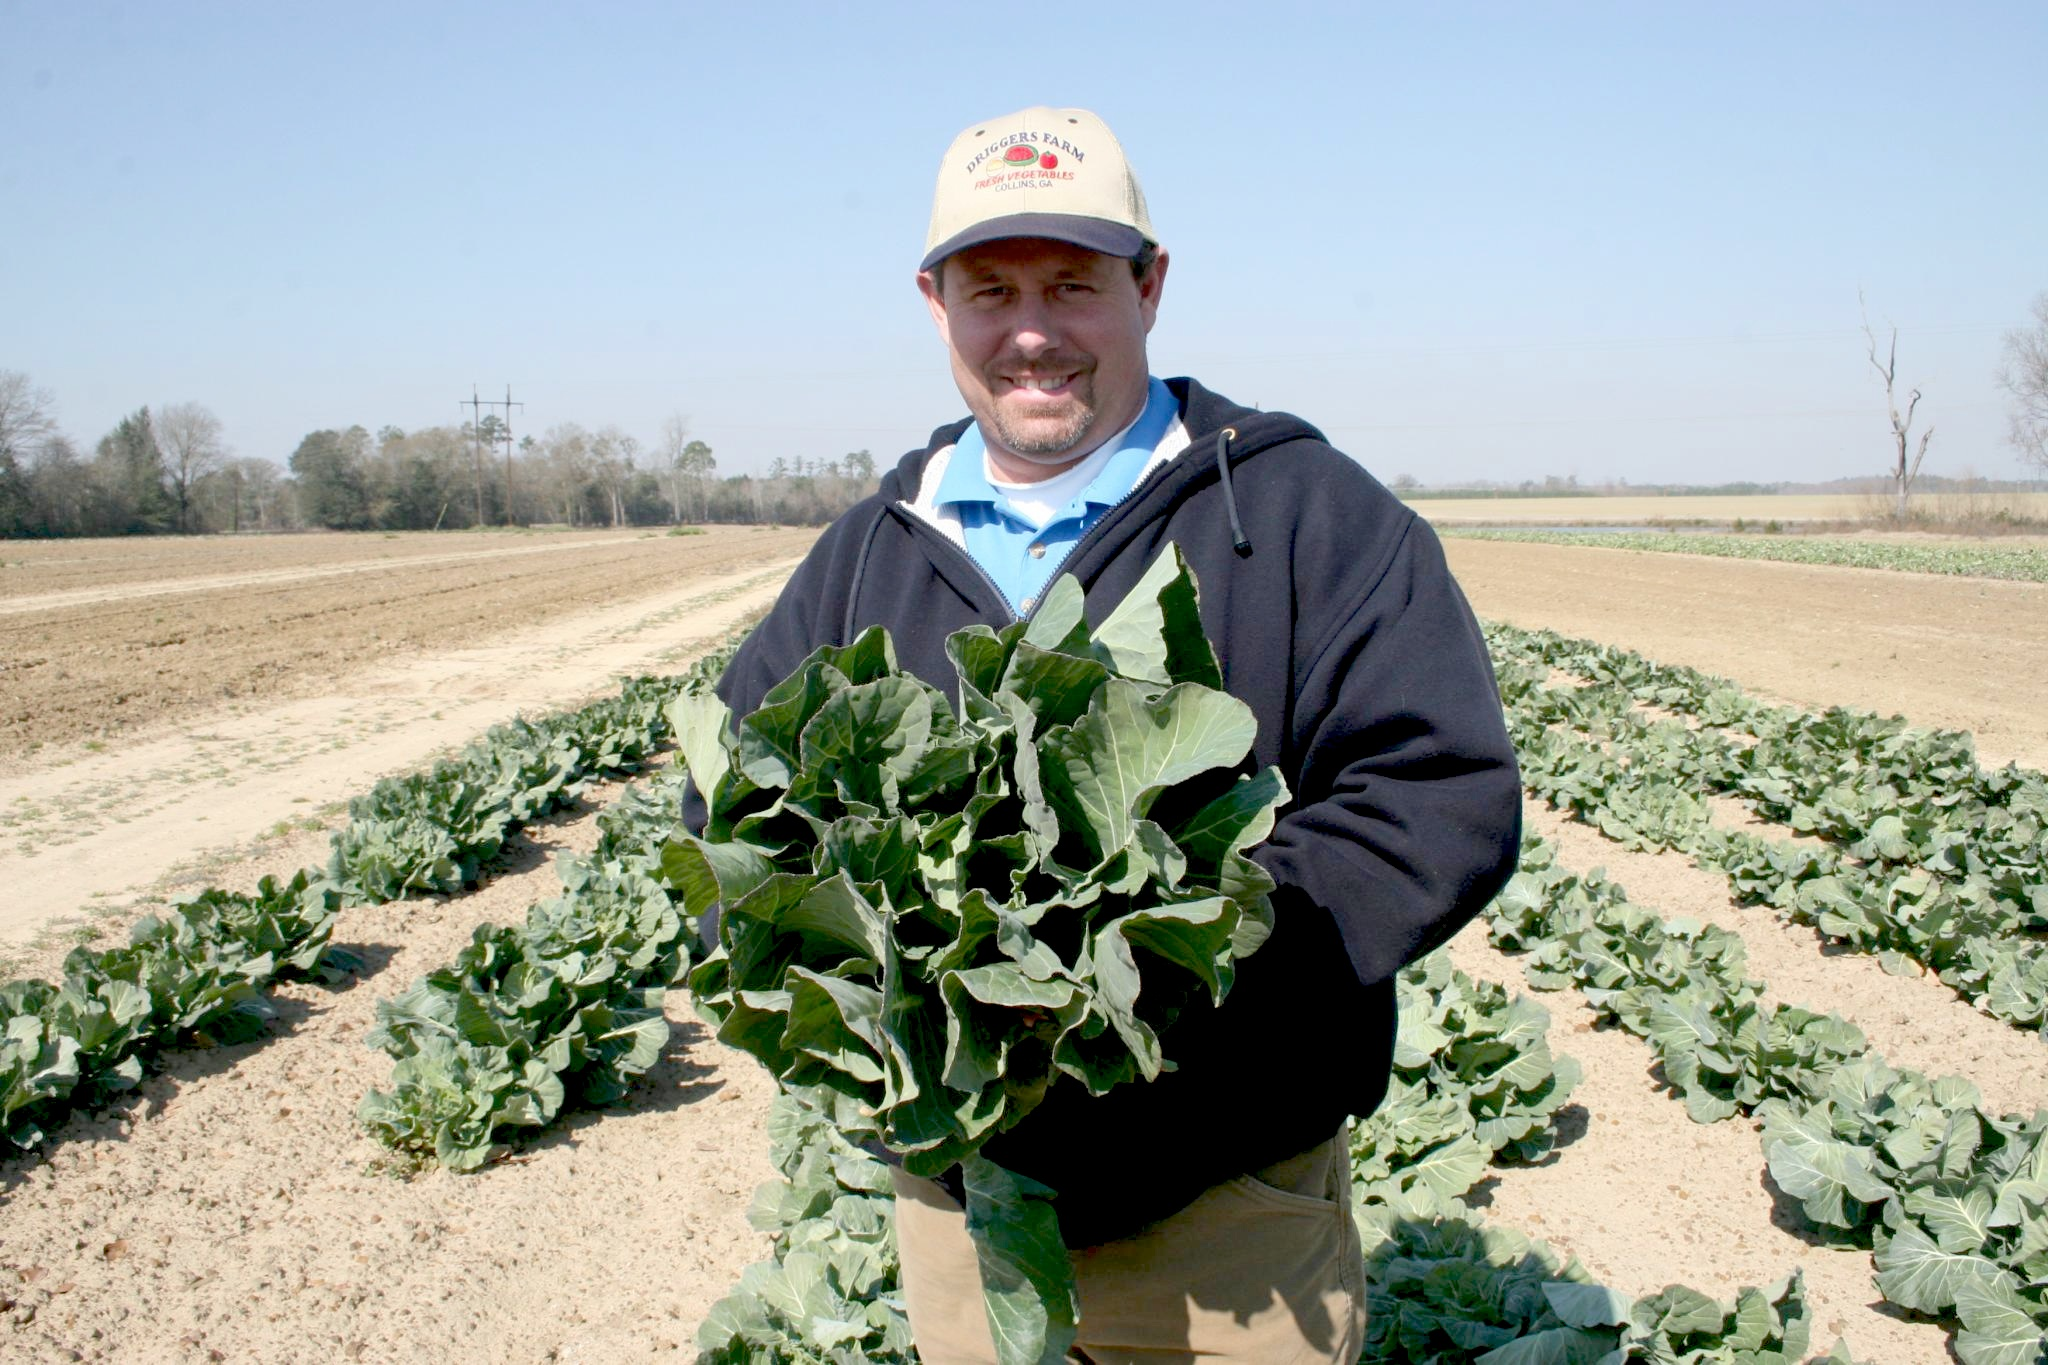 Southern farmers like Walter Driggers of Collins, Ga., can apply for grants from the SSARE to help pay the cost of trying new techniques on their farms.